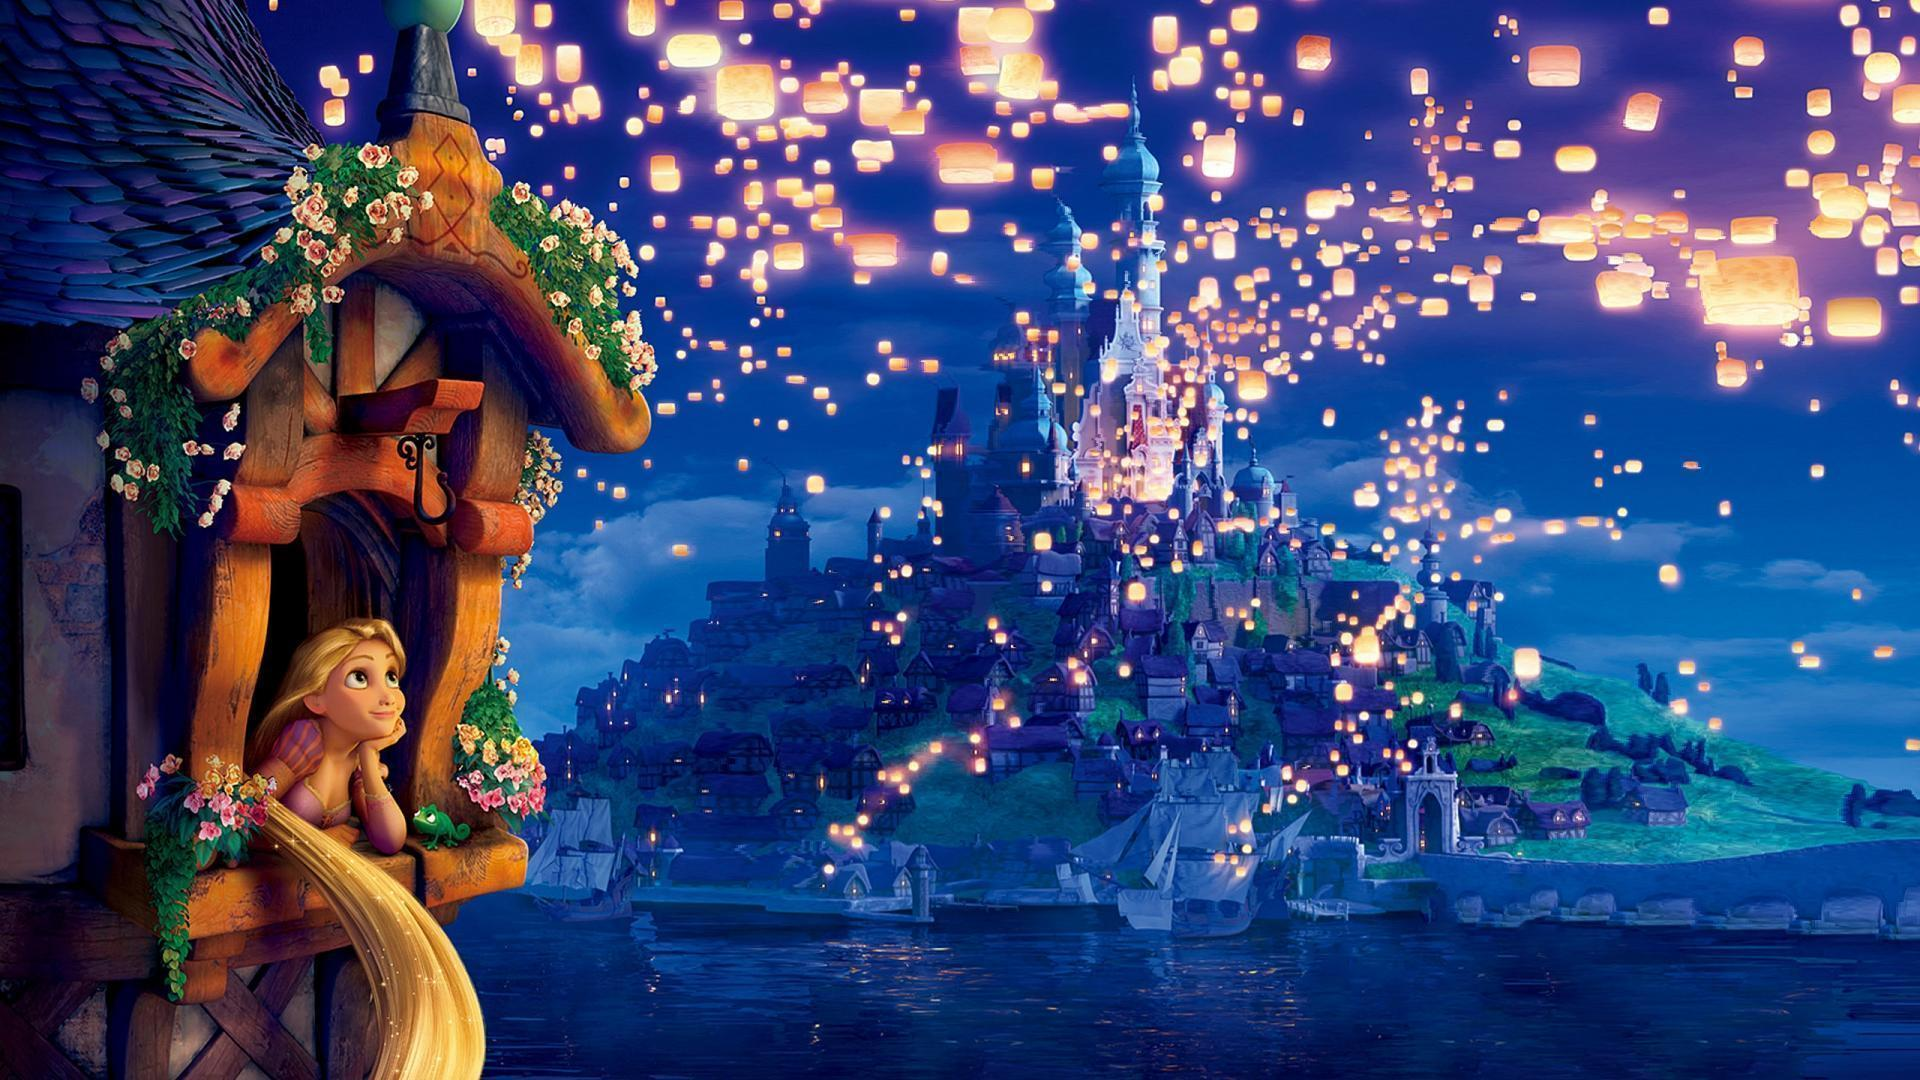 Tangled The Series Backgrounds posted by Ethan Simpson 1920x1080